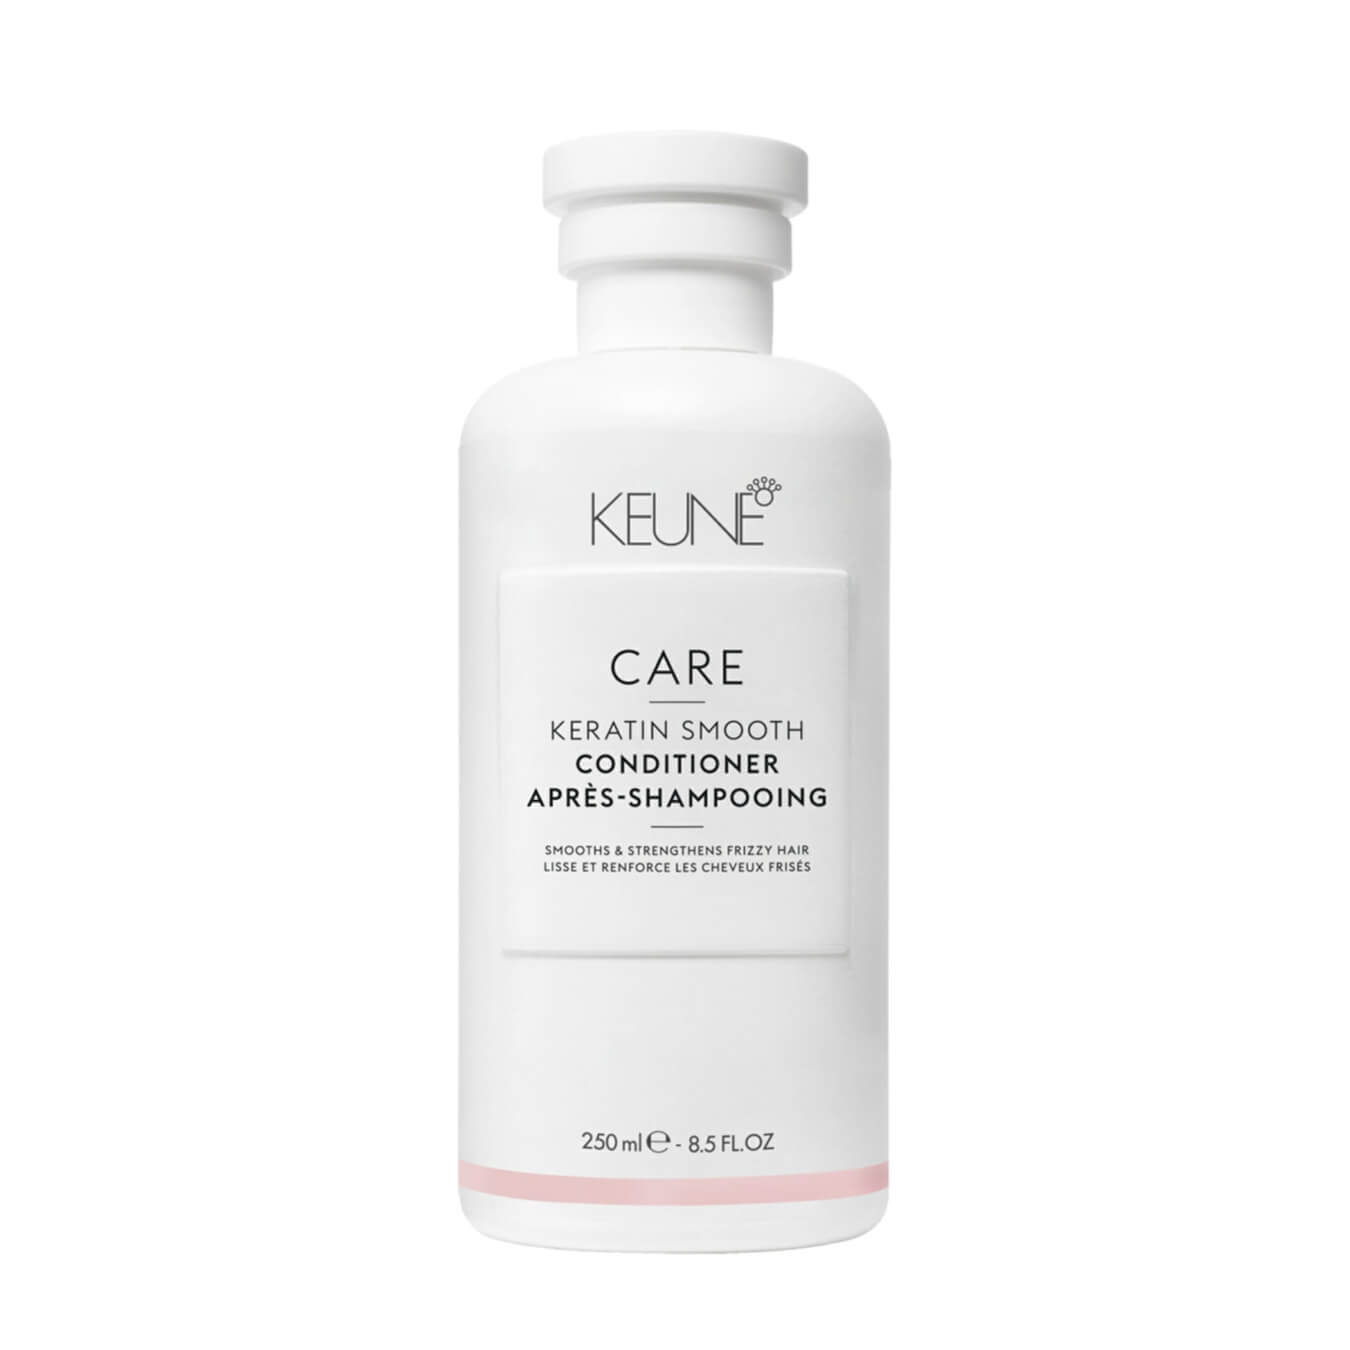 Kauf Keune Care Keratin Smooth Conditioner 250ml